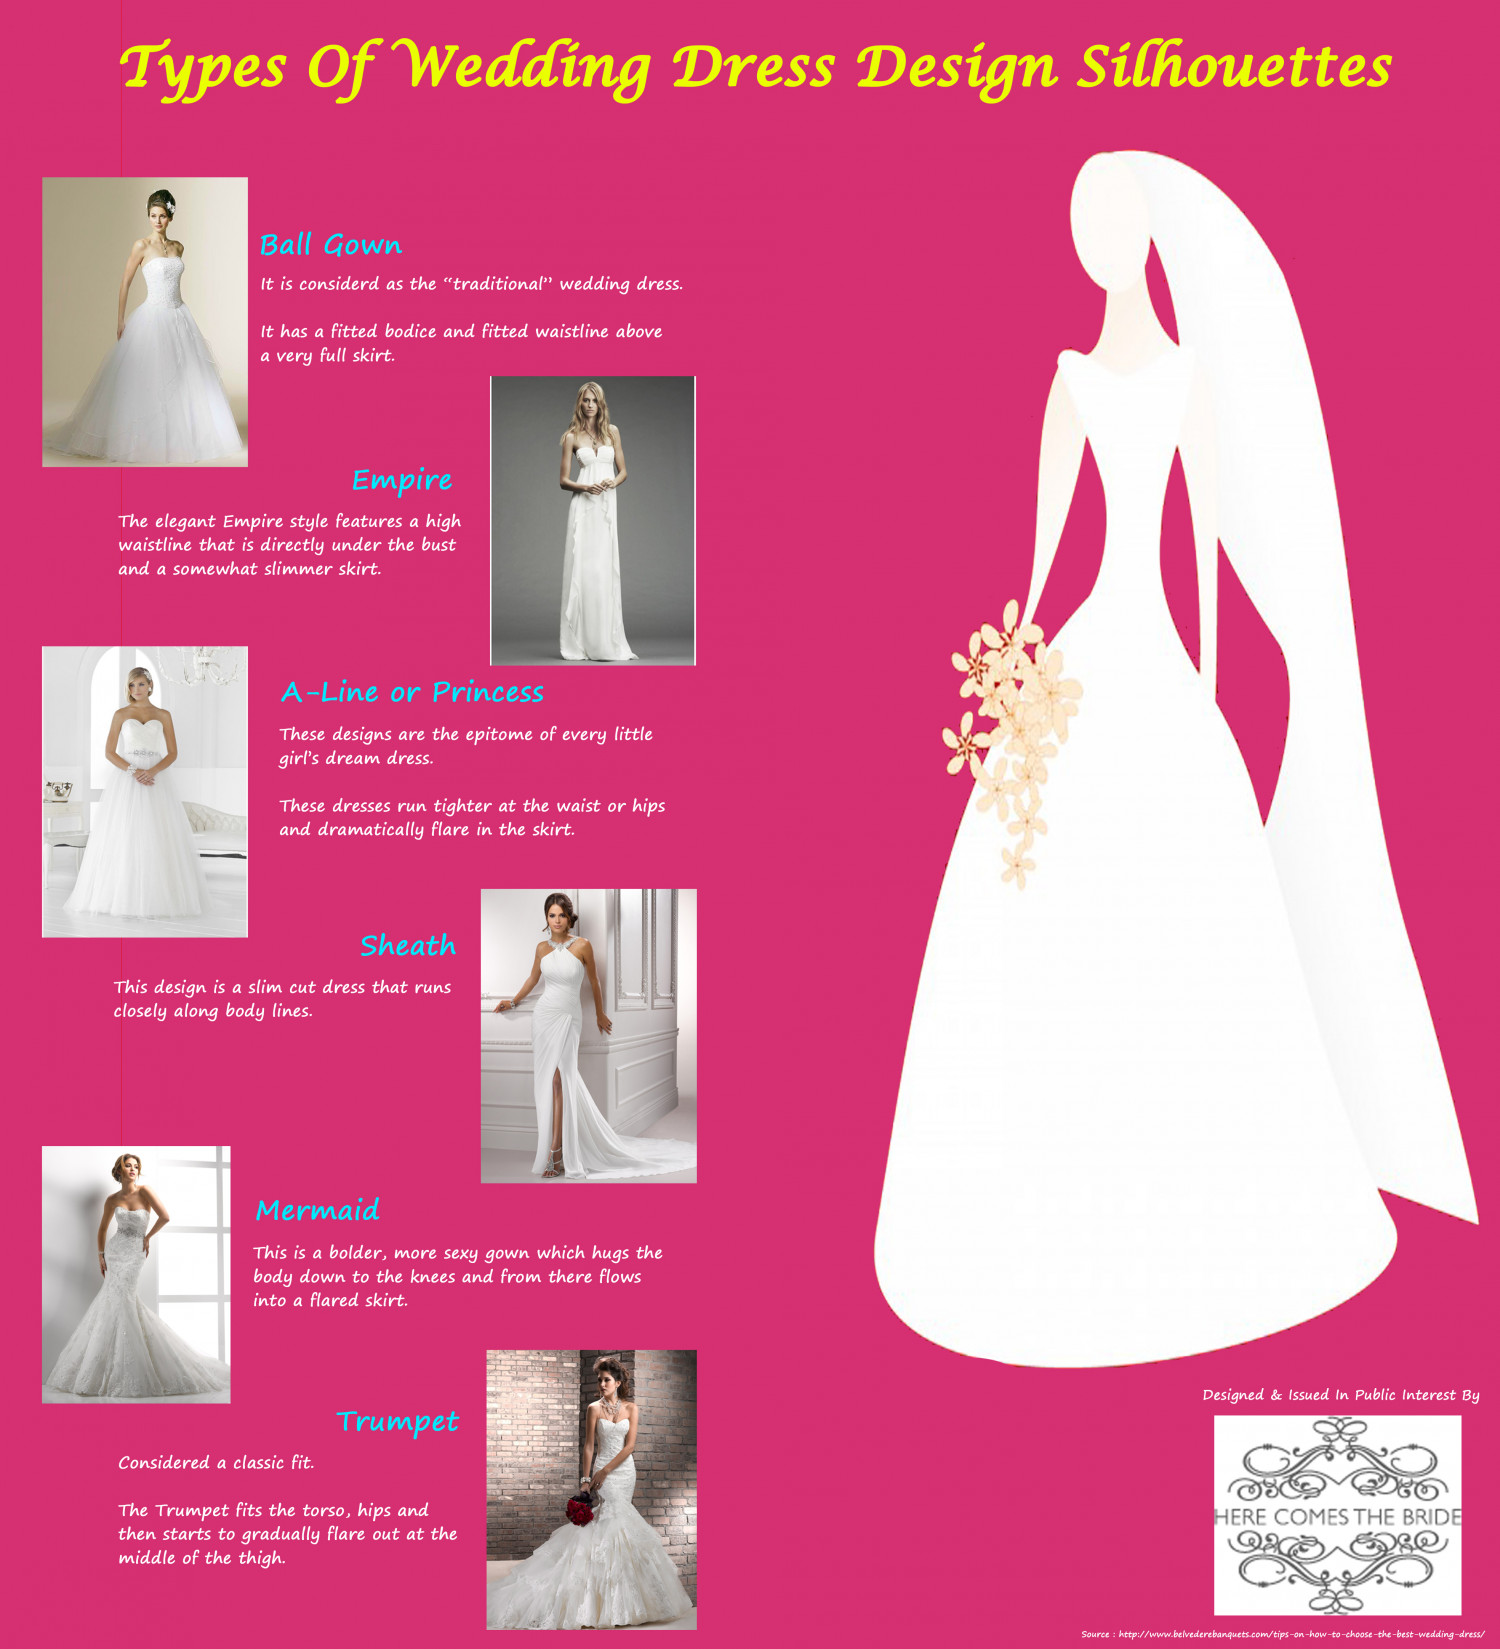 Types of wedding dress design silhouettes visual types of wedding dress design silhouettes infographic junglespirit Image collections